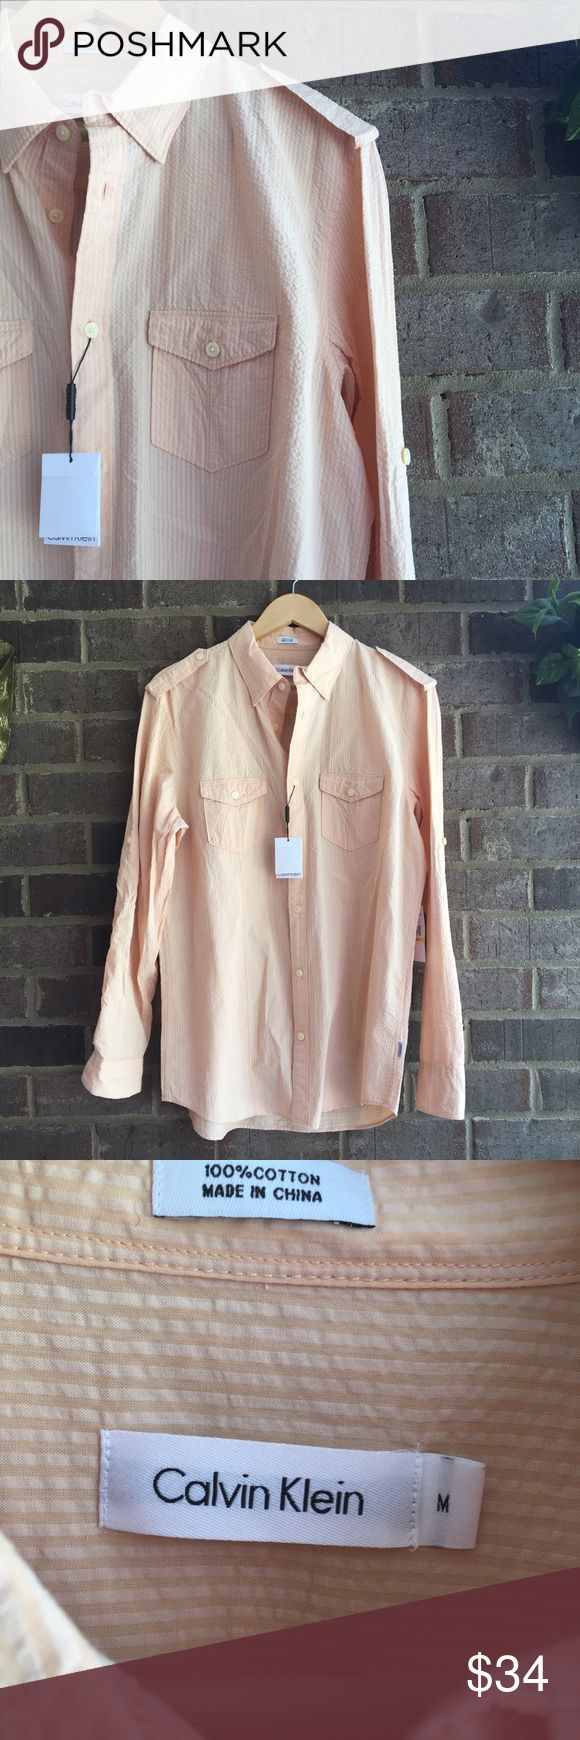 """Men's Calvin Klein NWT Peach Striped Dress Shirt This NWT Button Down shirt is in excellent condition. Made from 100% cotton. Textured fabric. 31"""" long. 10527 Calvin Klein Shirts Dress Shirts"""